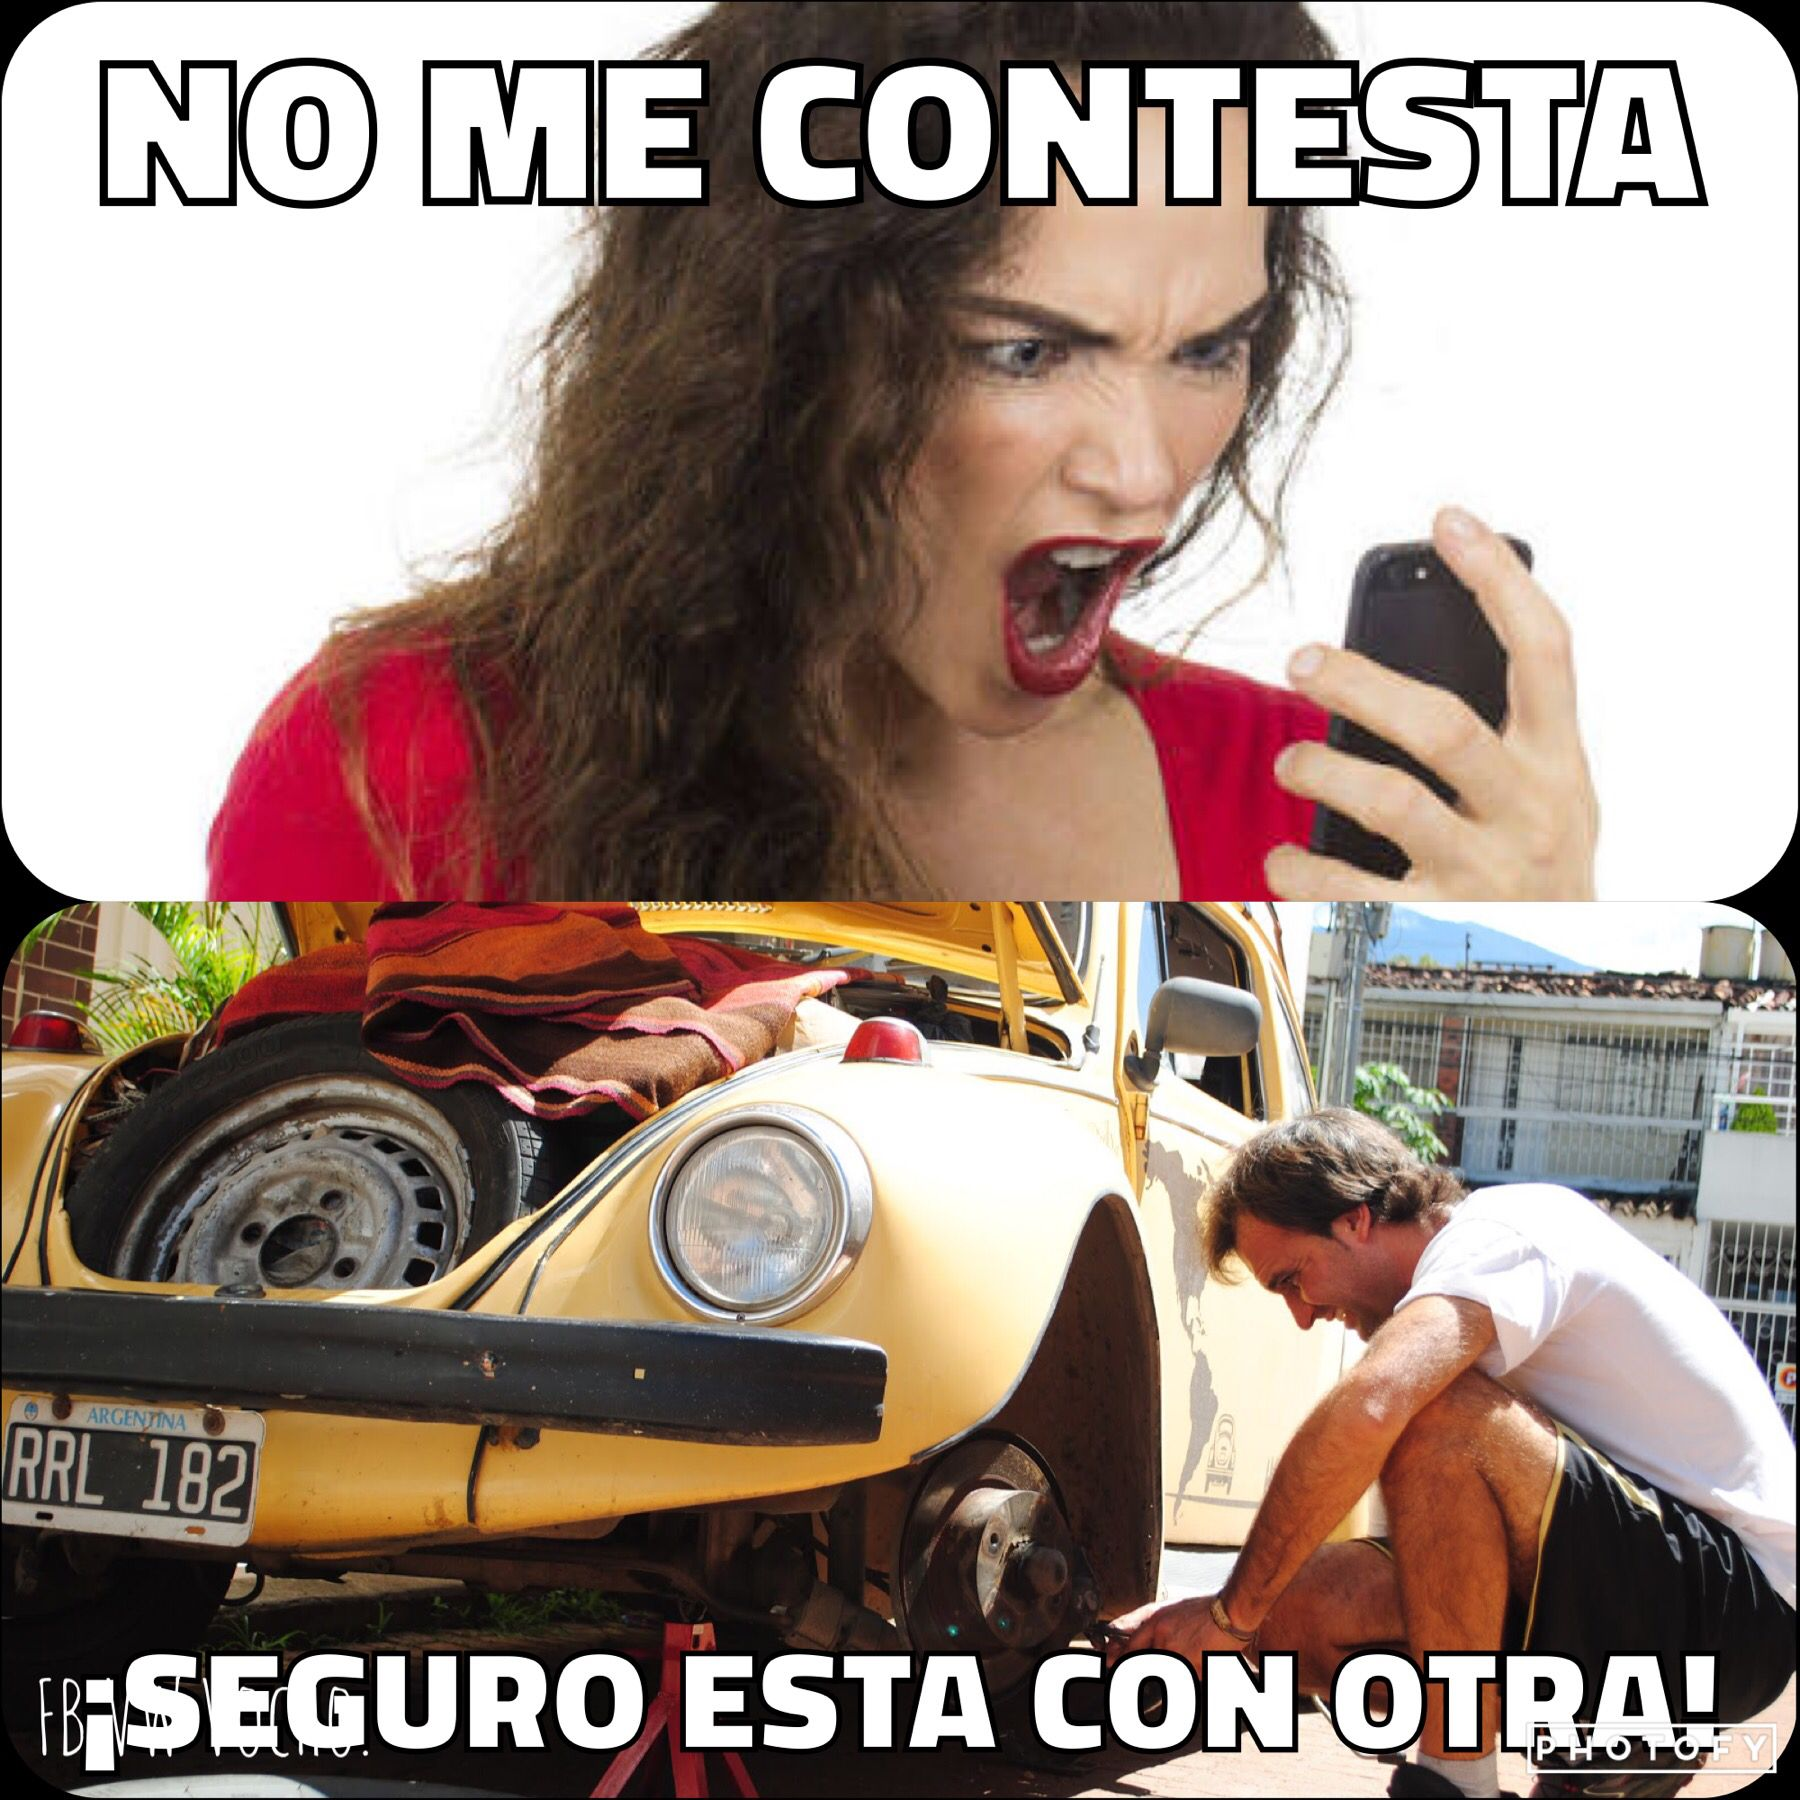 Pin By Luis Paredes On Memes De Vw Vocho La Hermandad Memes Cars And Motorcycles Fictional Characters